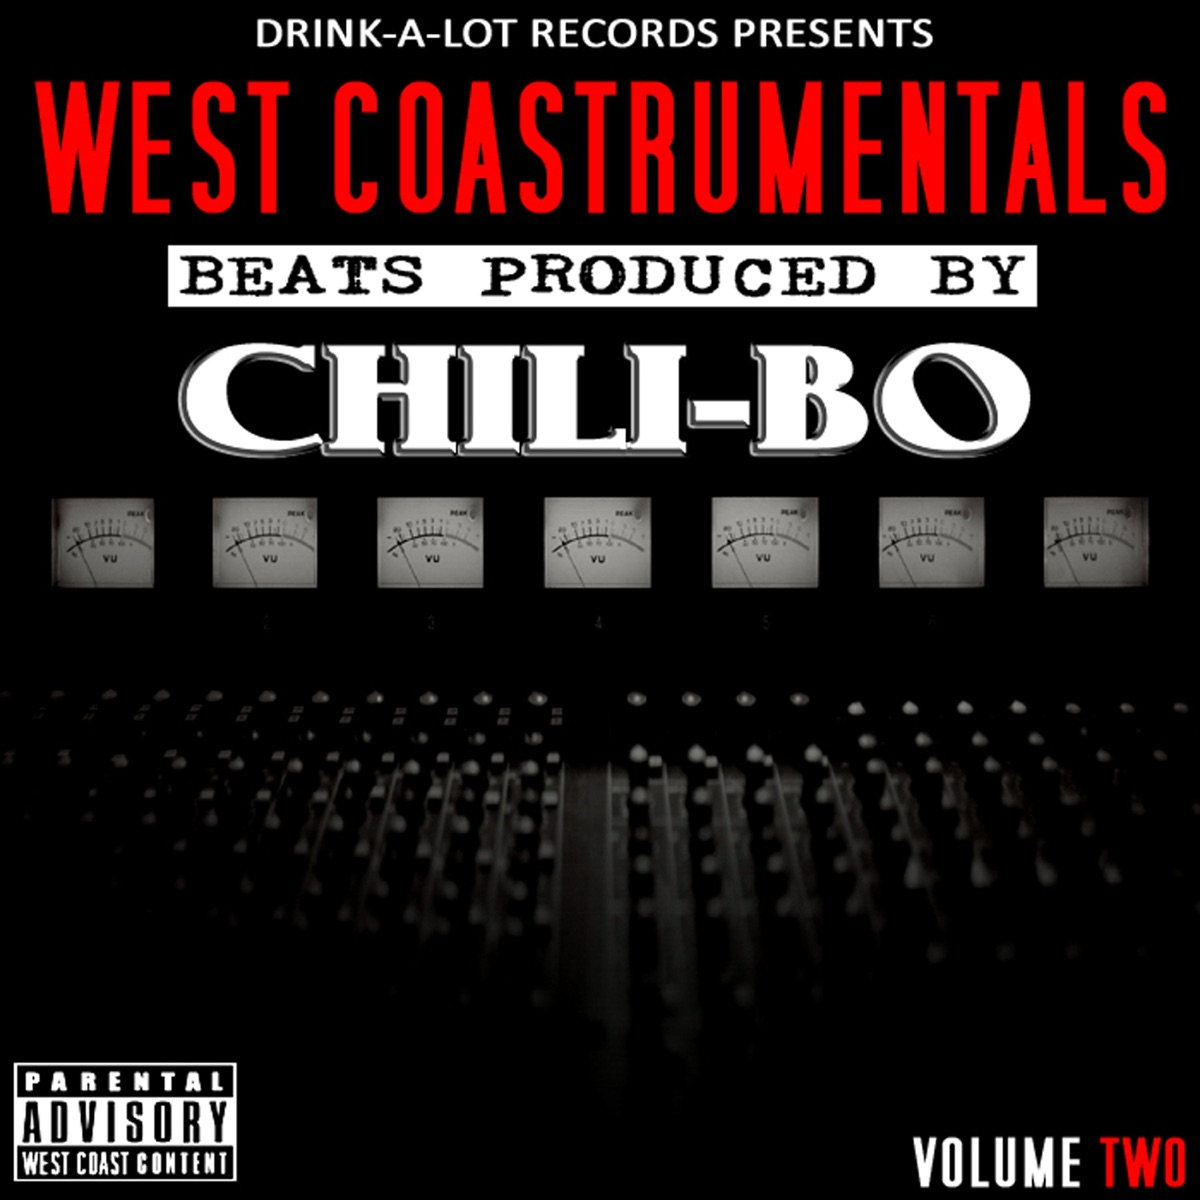 West Coastrumentals Vol 2 Chili-Bo CD cover